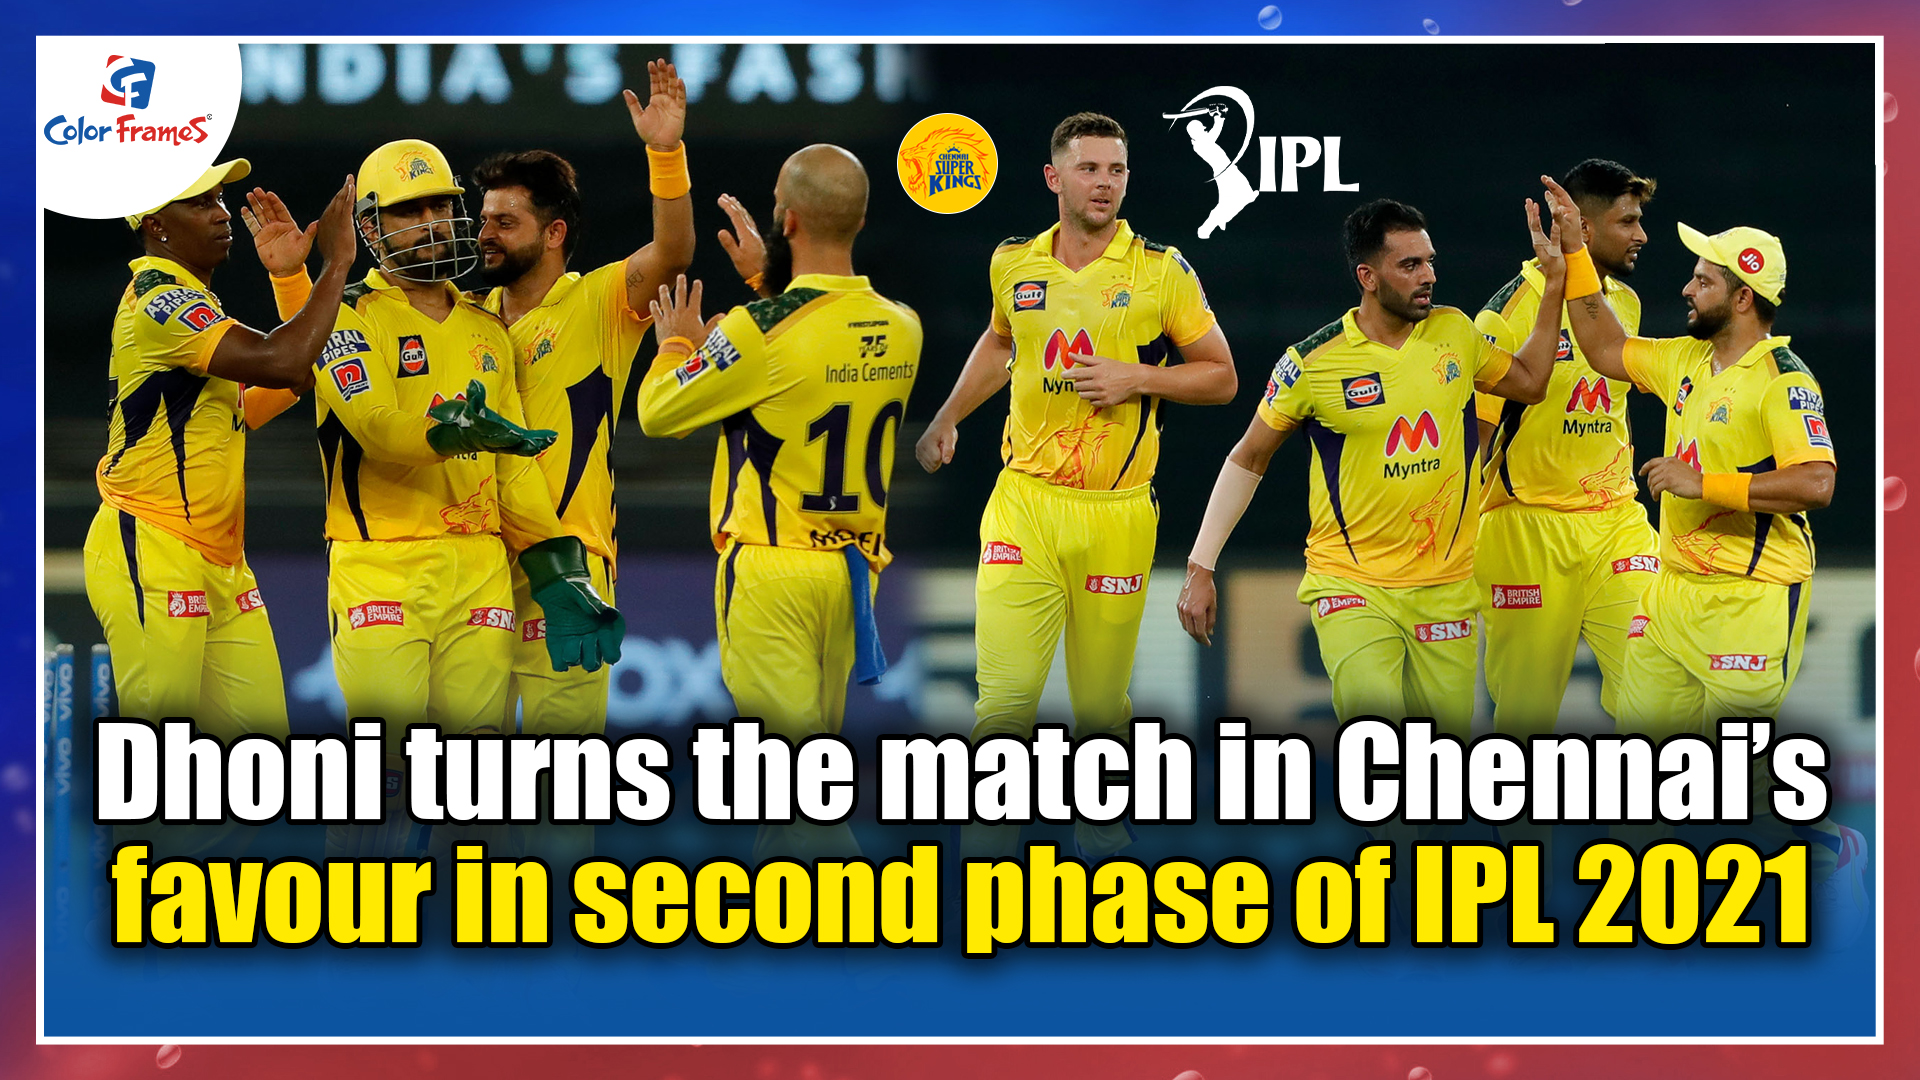 Dhoni turns the match in Chennai's favour in second phase of IPL 2021